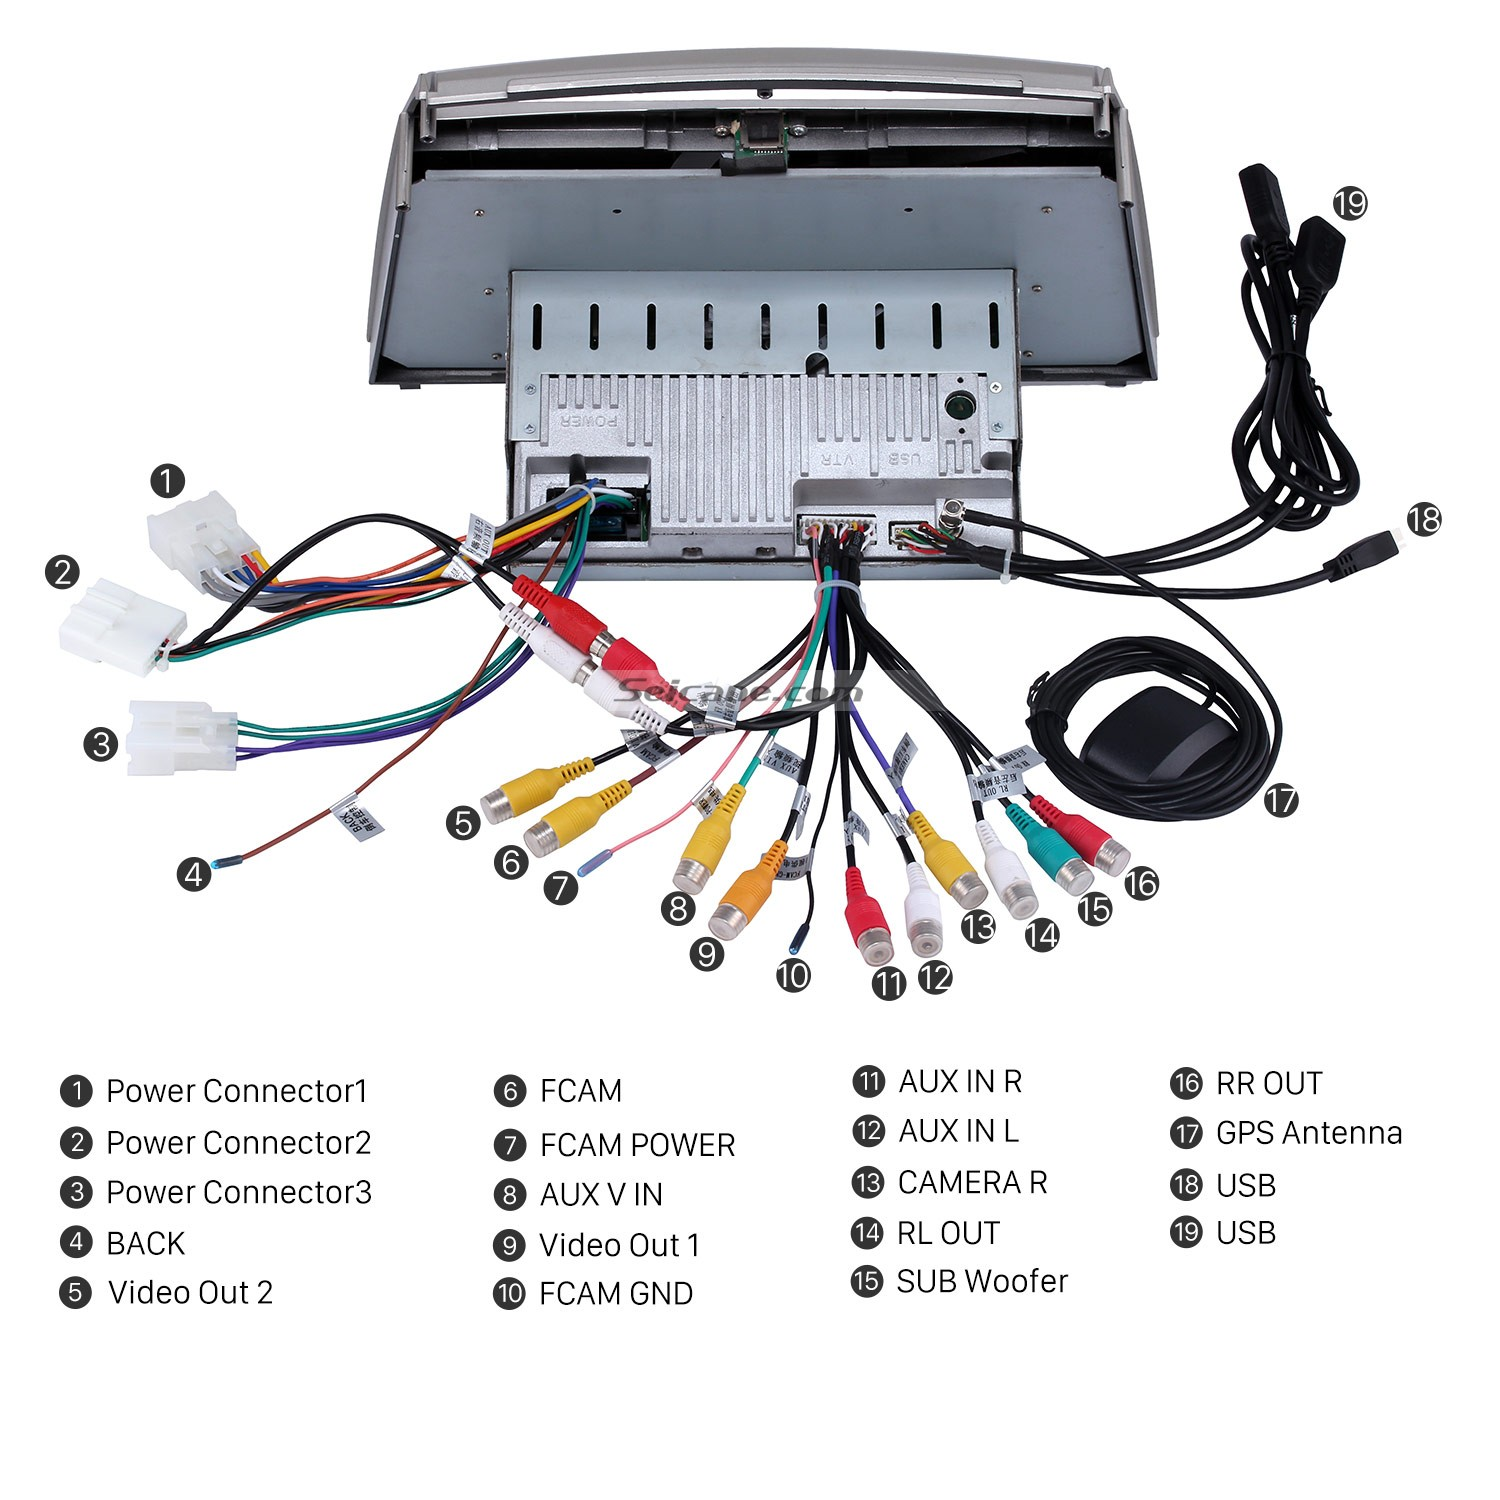 2006 2007 2008 2009 2010 Toyota Camry Gps Bluetooth Car Radio Electrical Wiring Diagram Manual Connect The Harnesses To Back Of New Seicane